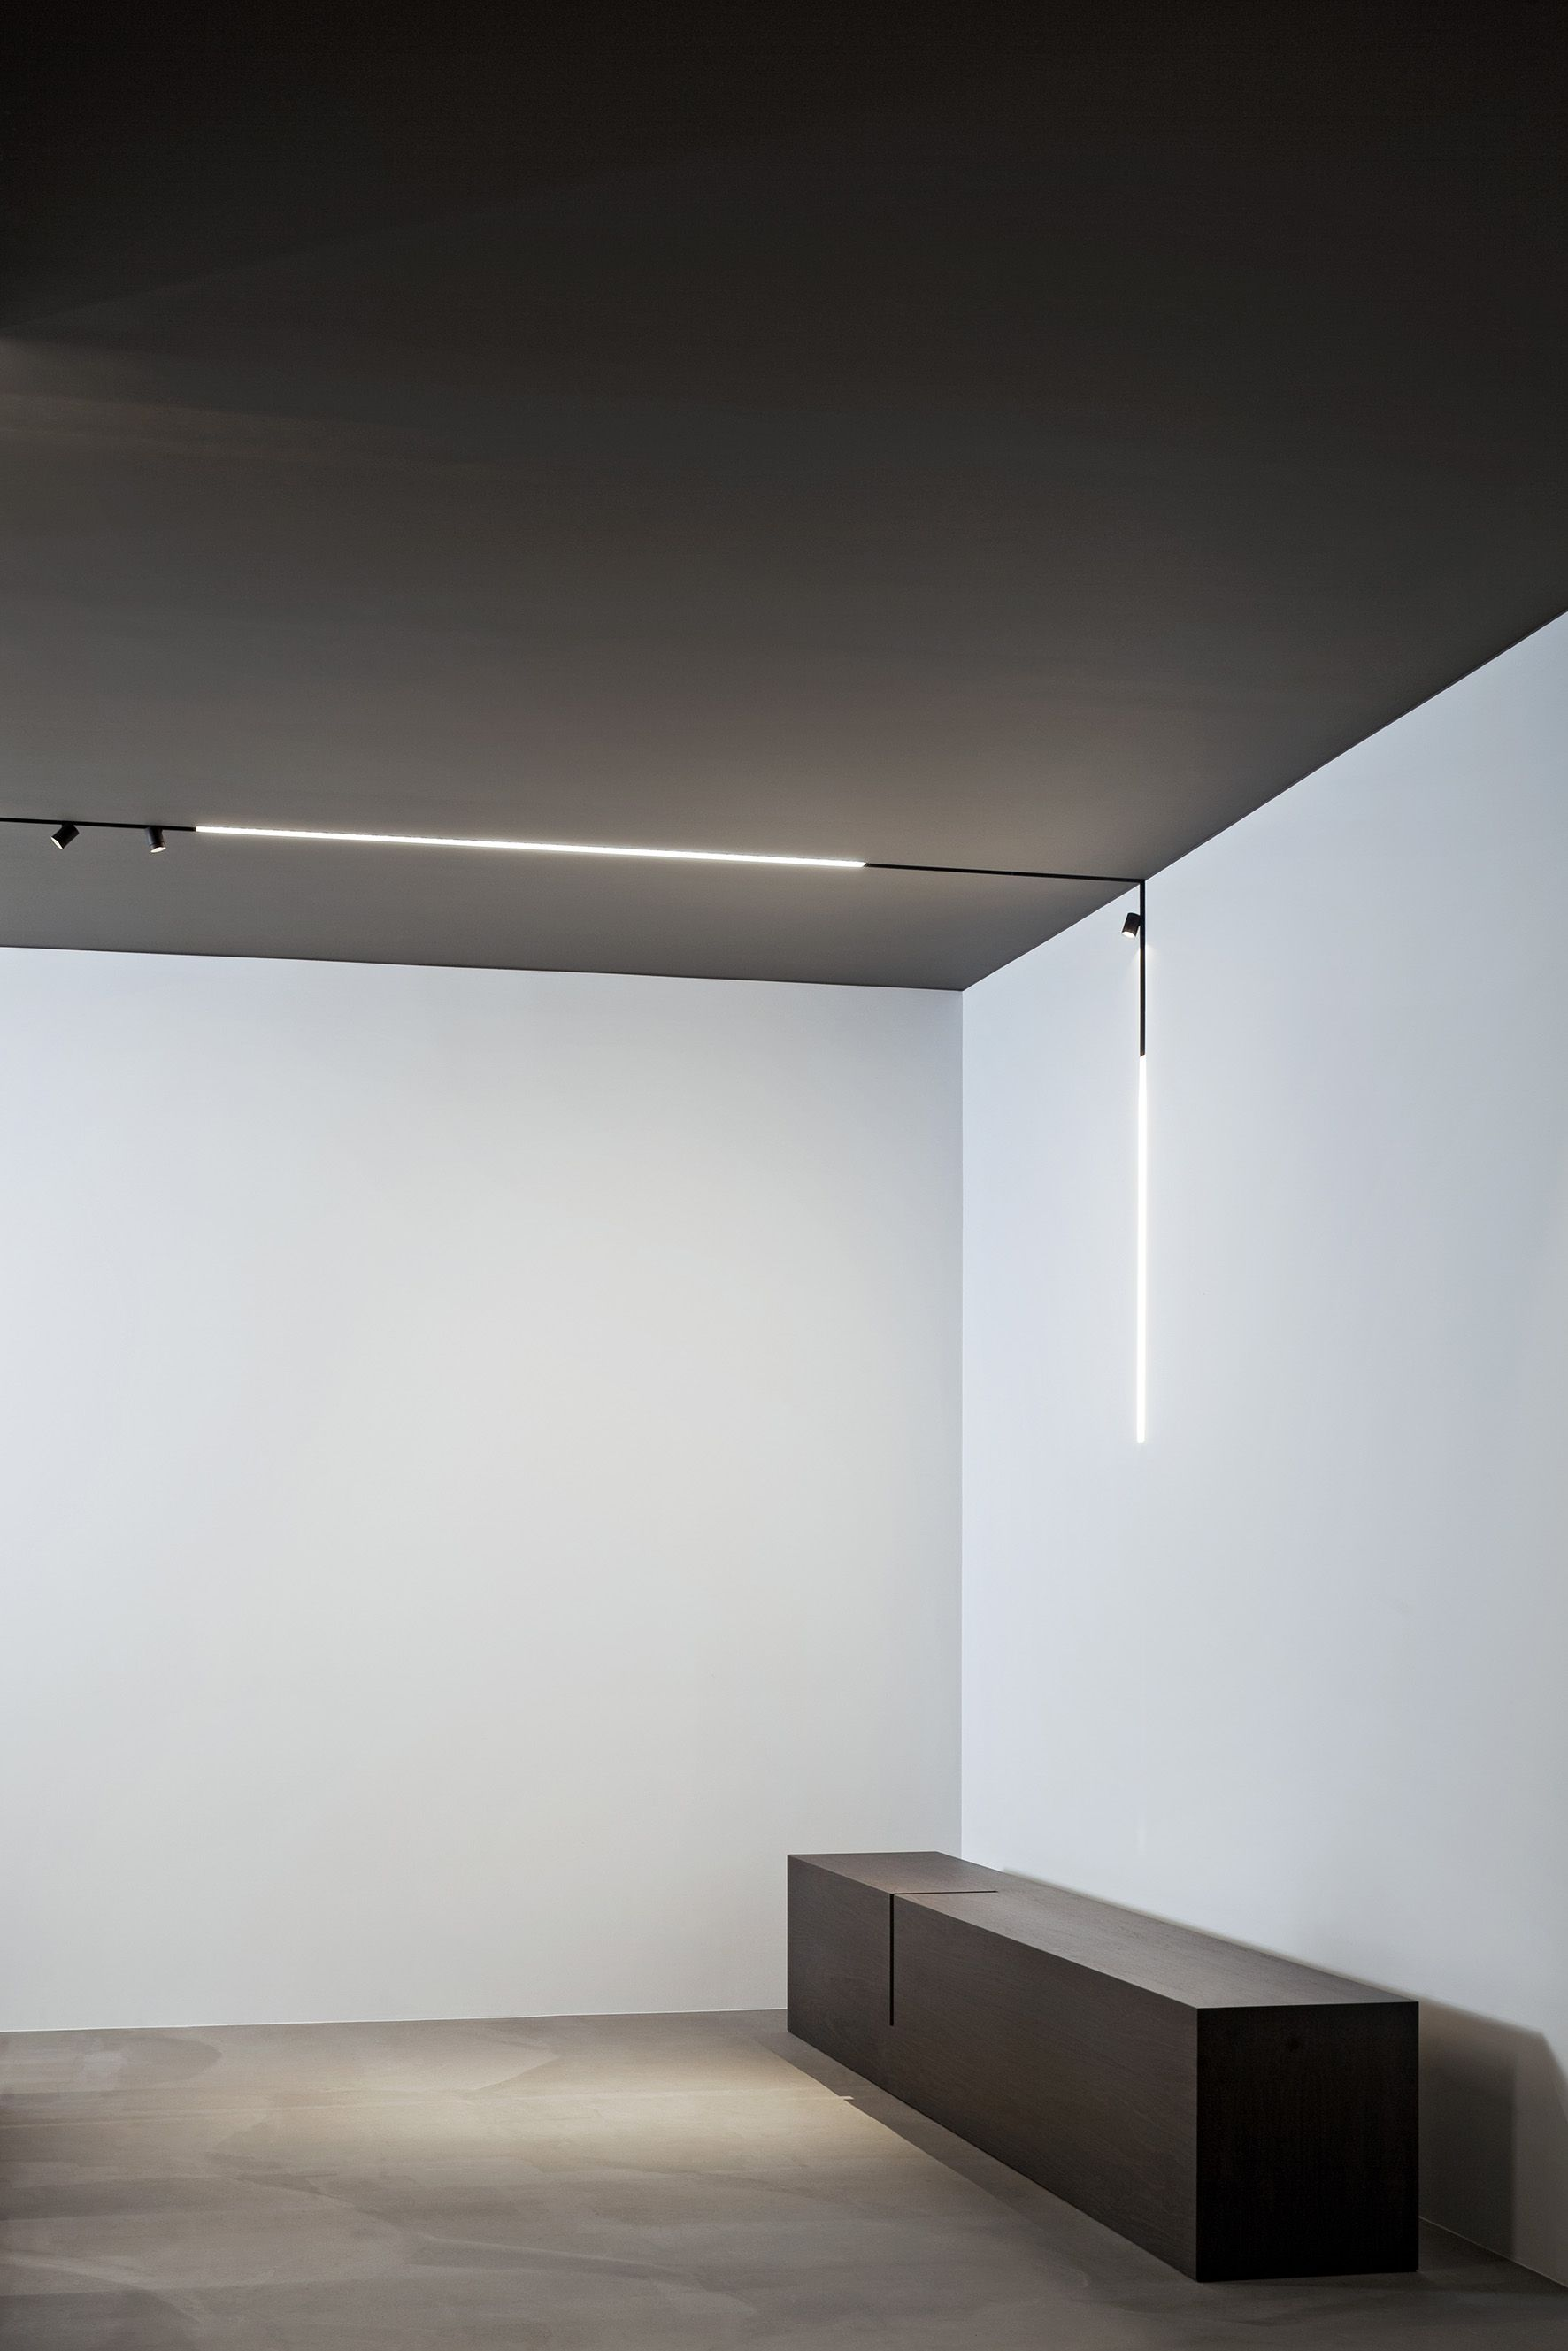 corner lighting. A High-tech LED Lighting System For Interior Architecture. The Running Magnet 2.0 Comprises Corner R